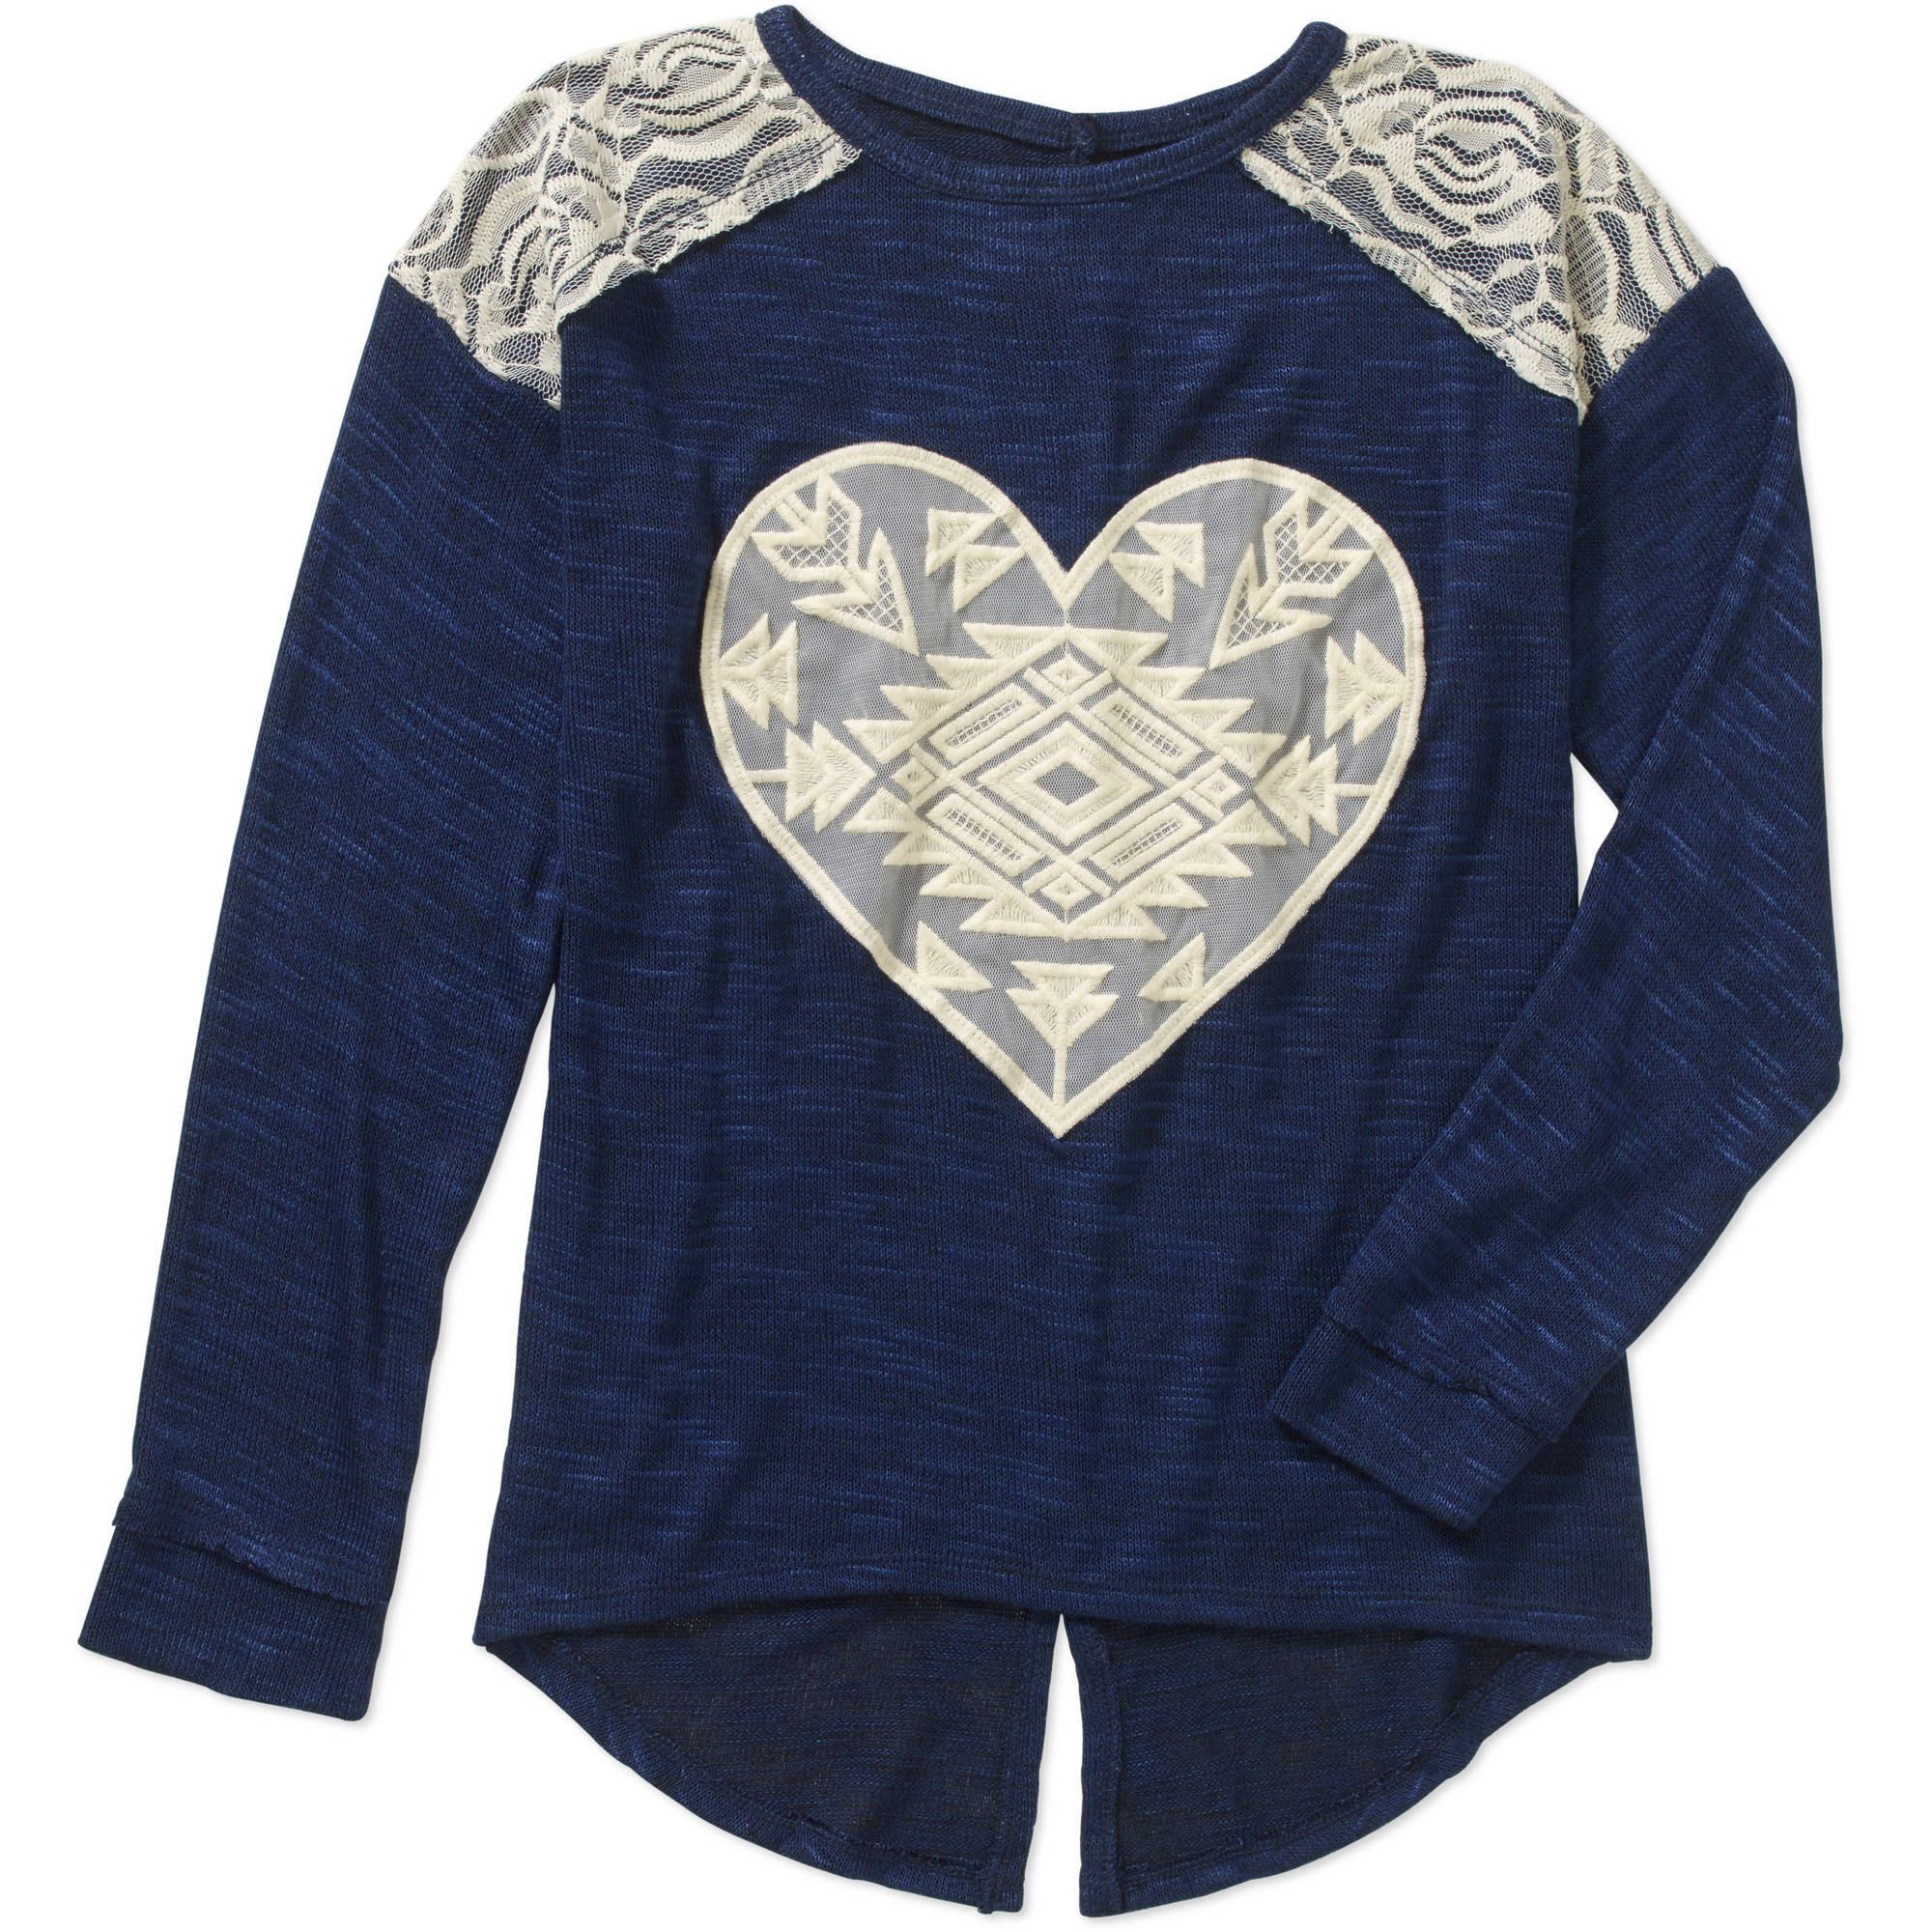 Miss Chievous Girls' Crochet Heart Long Sleeve Ribbed Fasion Top